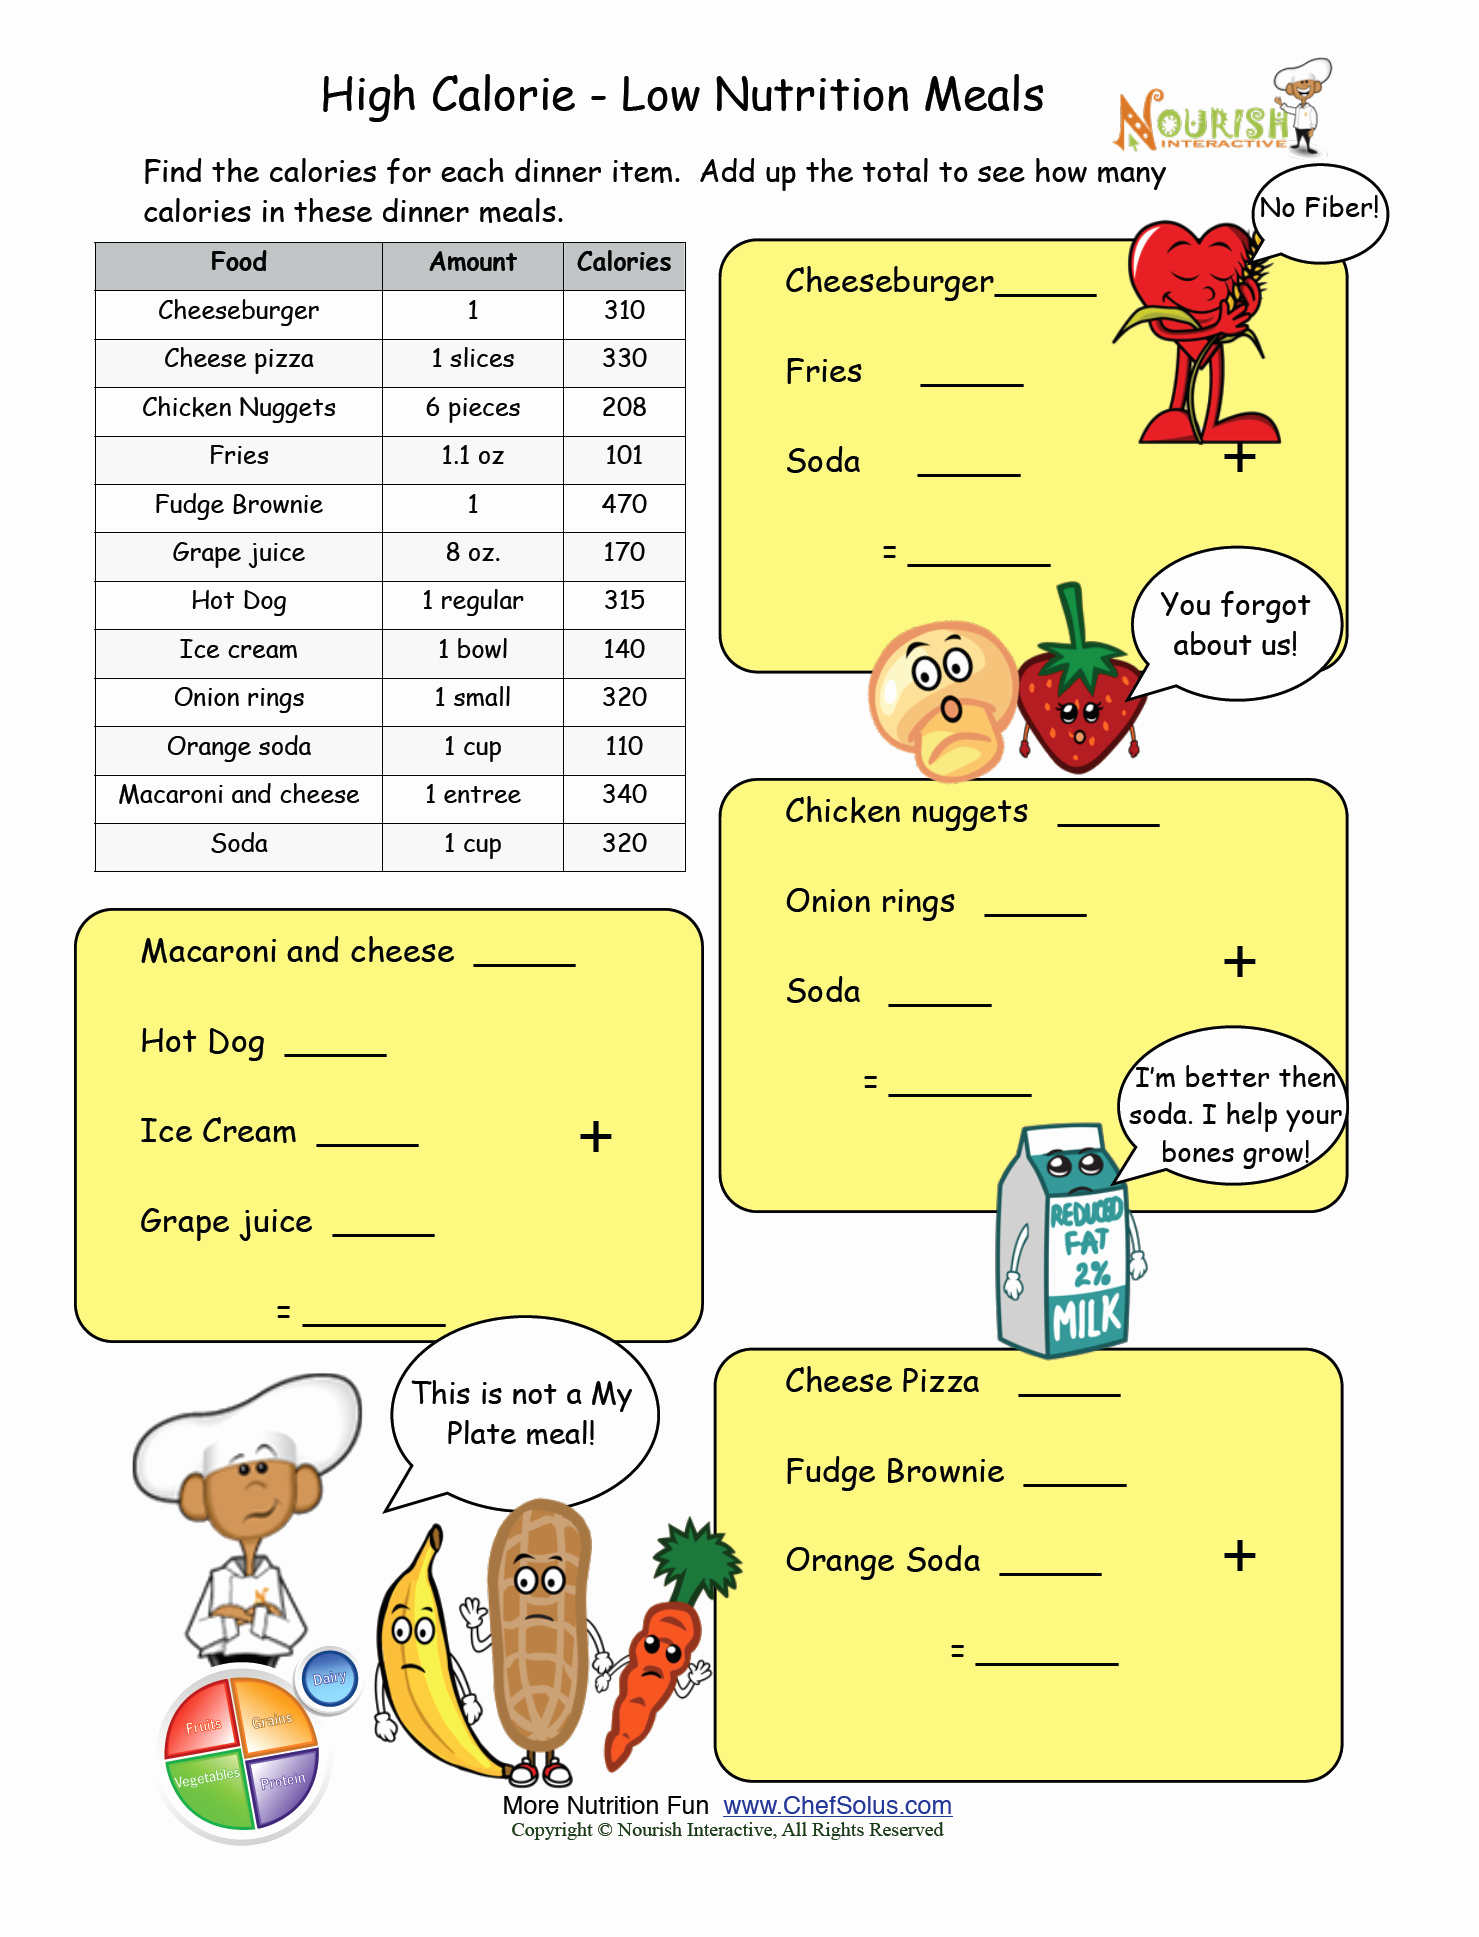 Nutrition Label Worksheet Answer Key Inspirational Pin On Nutrition Worksheets and Games